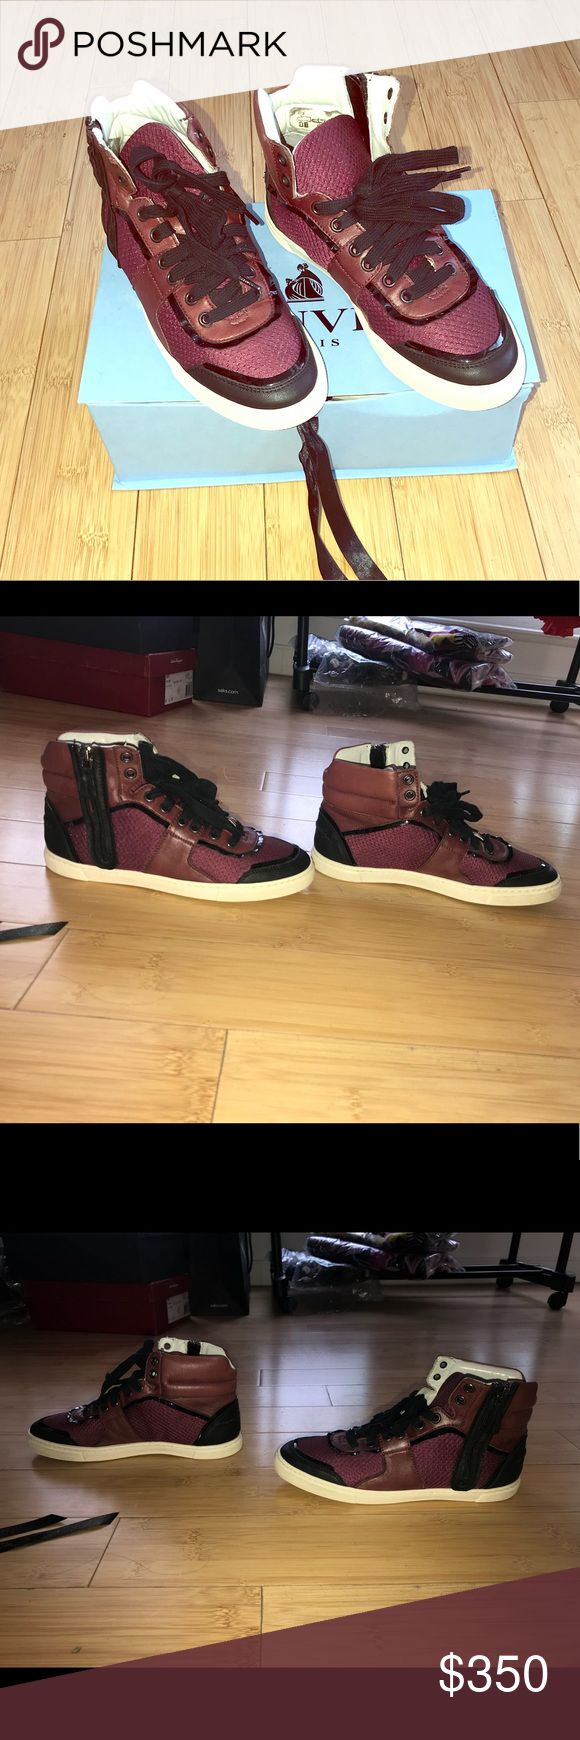 Lanvin High Top Sporty Basket Sneakers Size 35 Lanvin High Top Sporty Basket Sneaker Color: Aubergine/Eggplant 100% Lamb Skin Leather Size: 35 Excellent condition! Worn a handful of times, can add more pics if necessary. Selling because too small, love these sneakers and they are very comfortable! Lanvin Shoes Sneakers